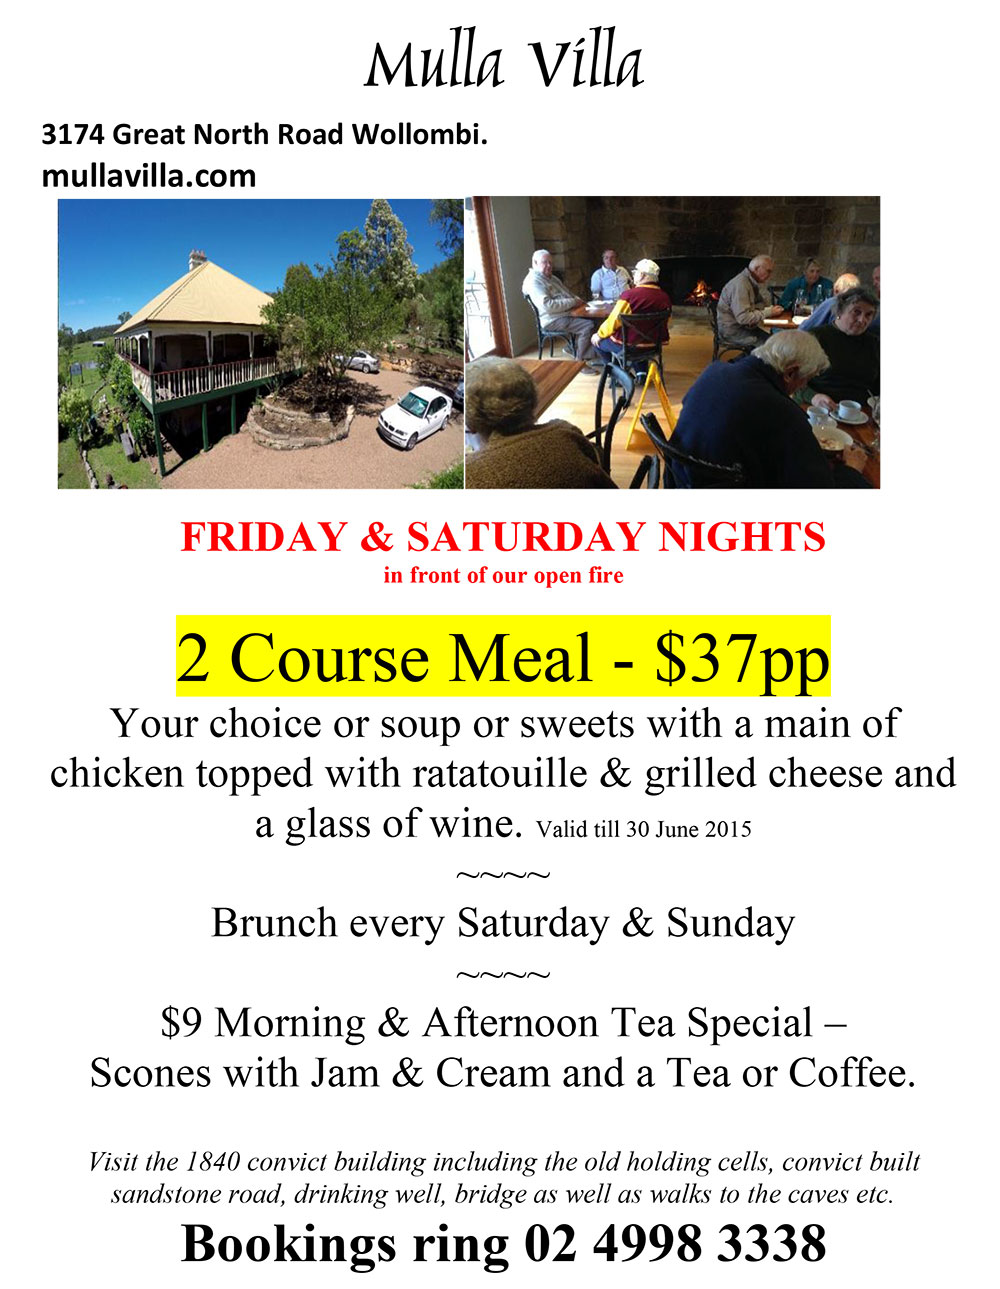 Mulla-Villa-Restaurant-offer-2015